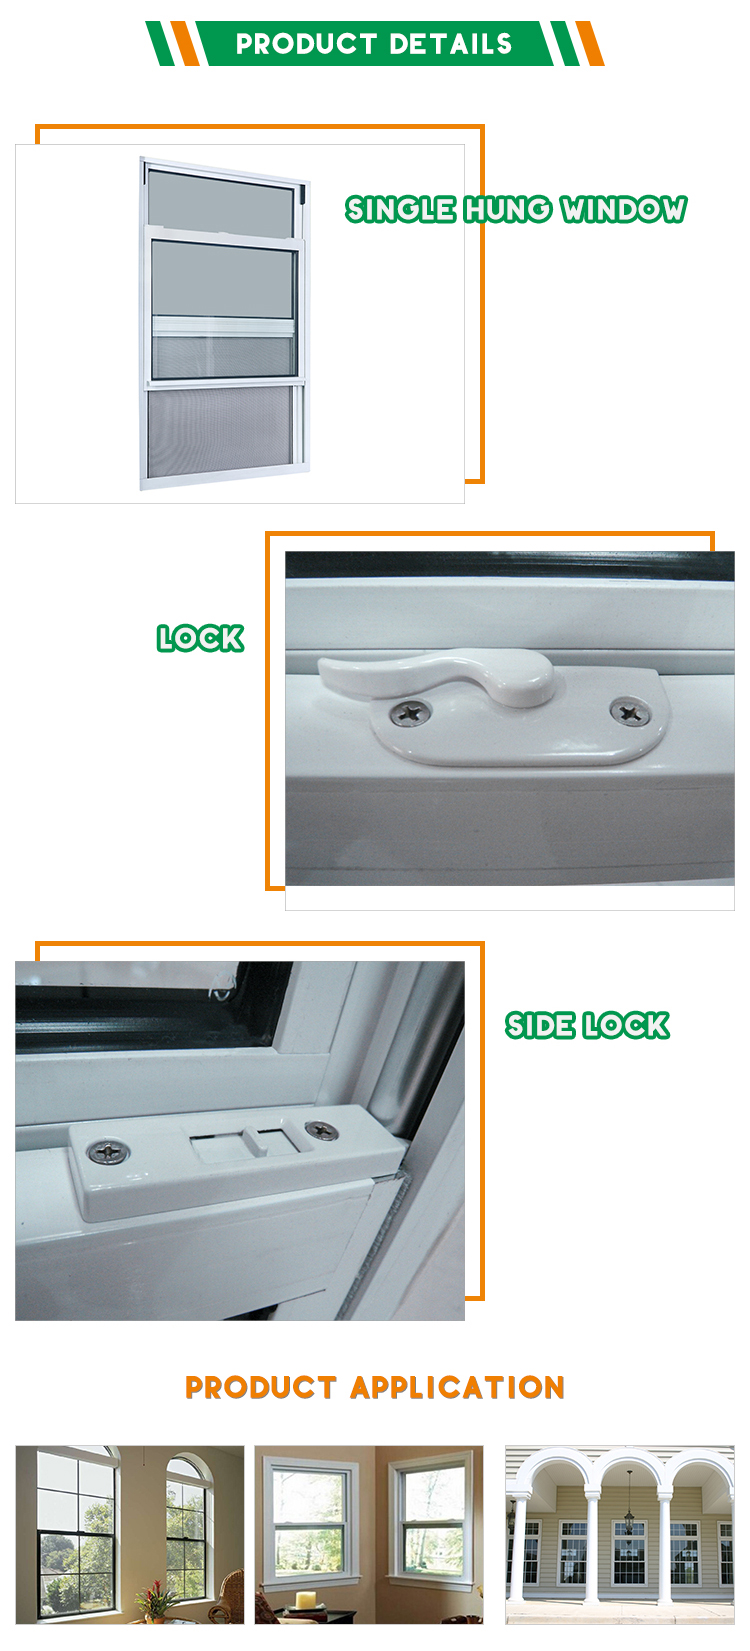 French Aluminum Single Hung Sash Window Or Top Hung Window With High Quality for Sale